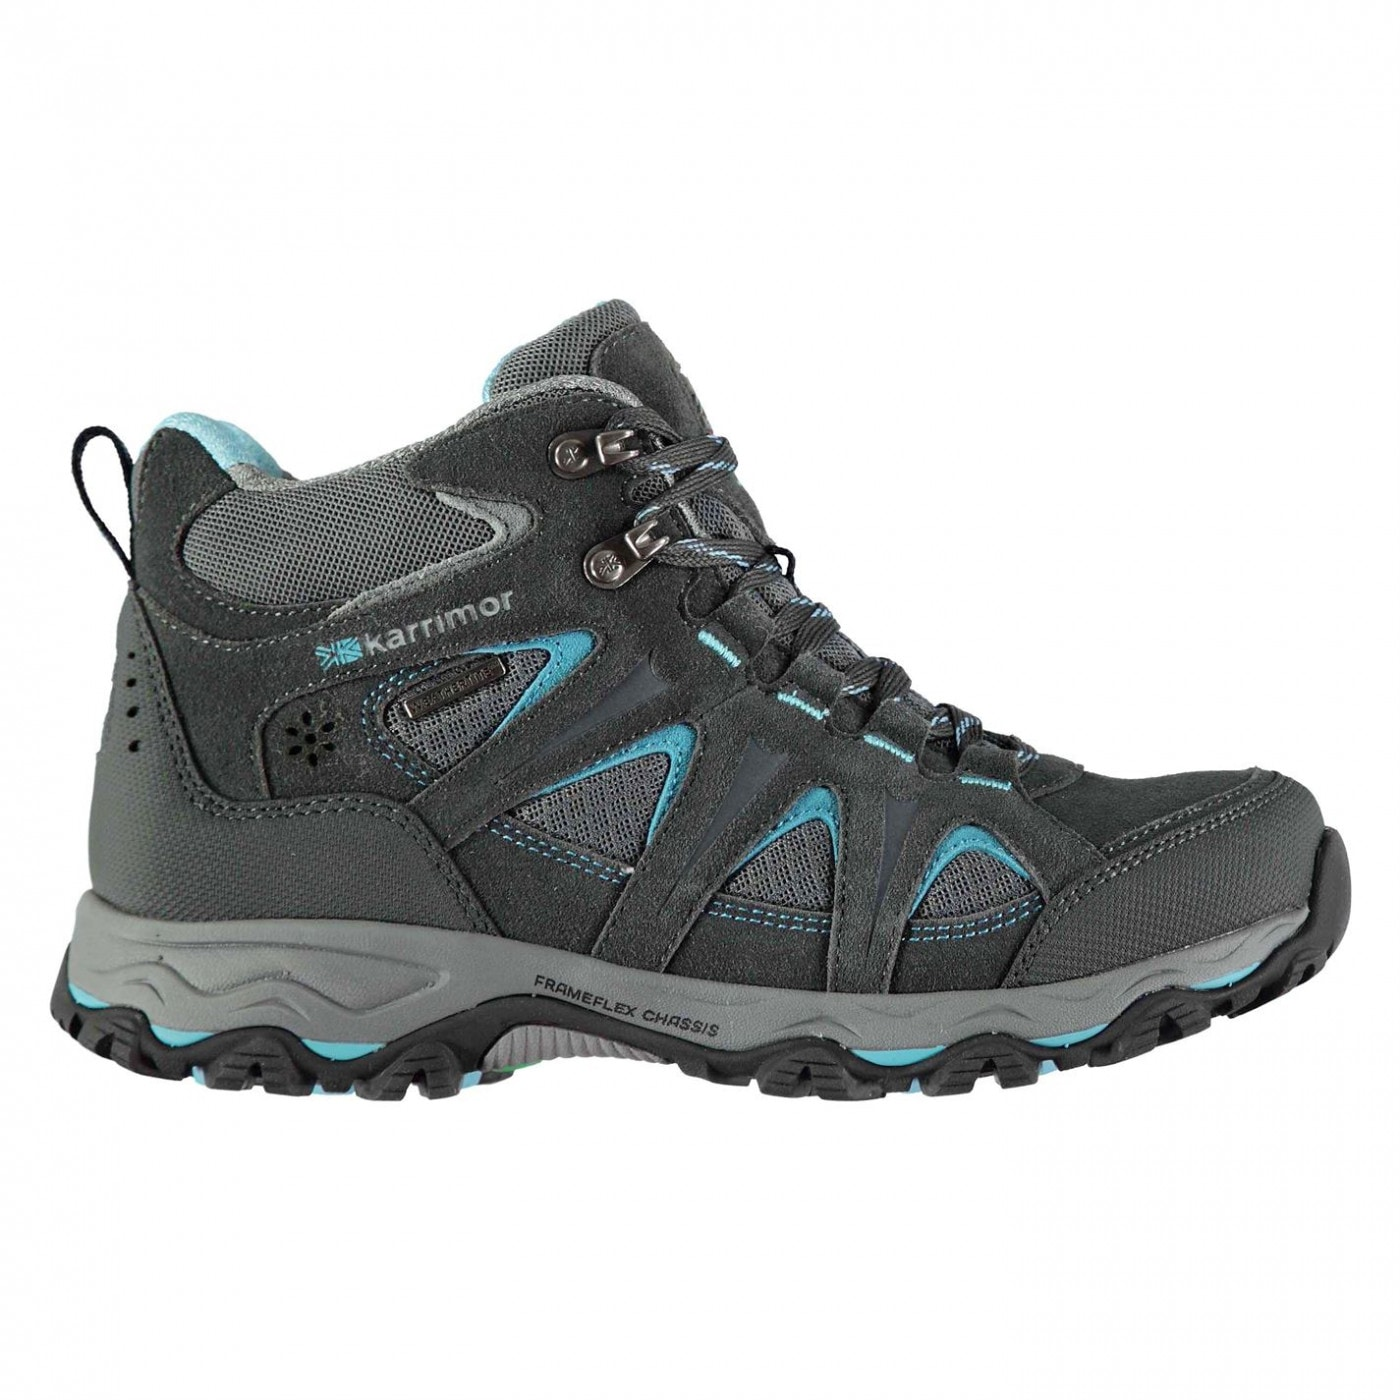 Women's walking shoes Karrimor Mount Mid